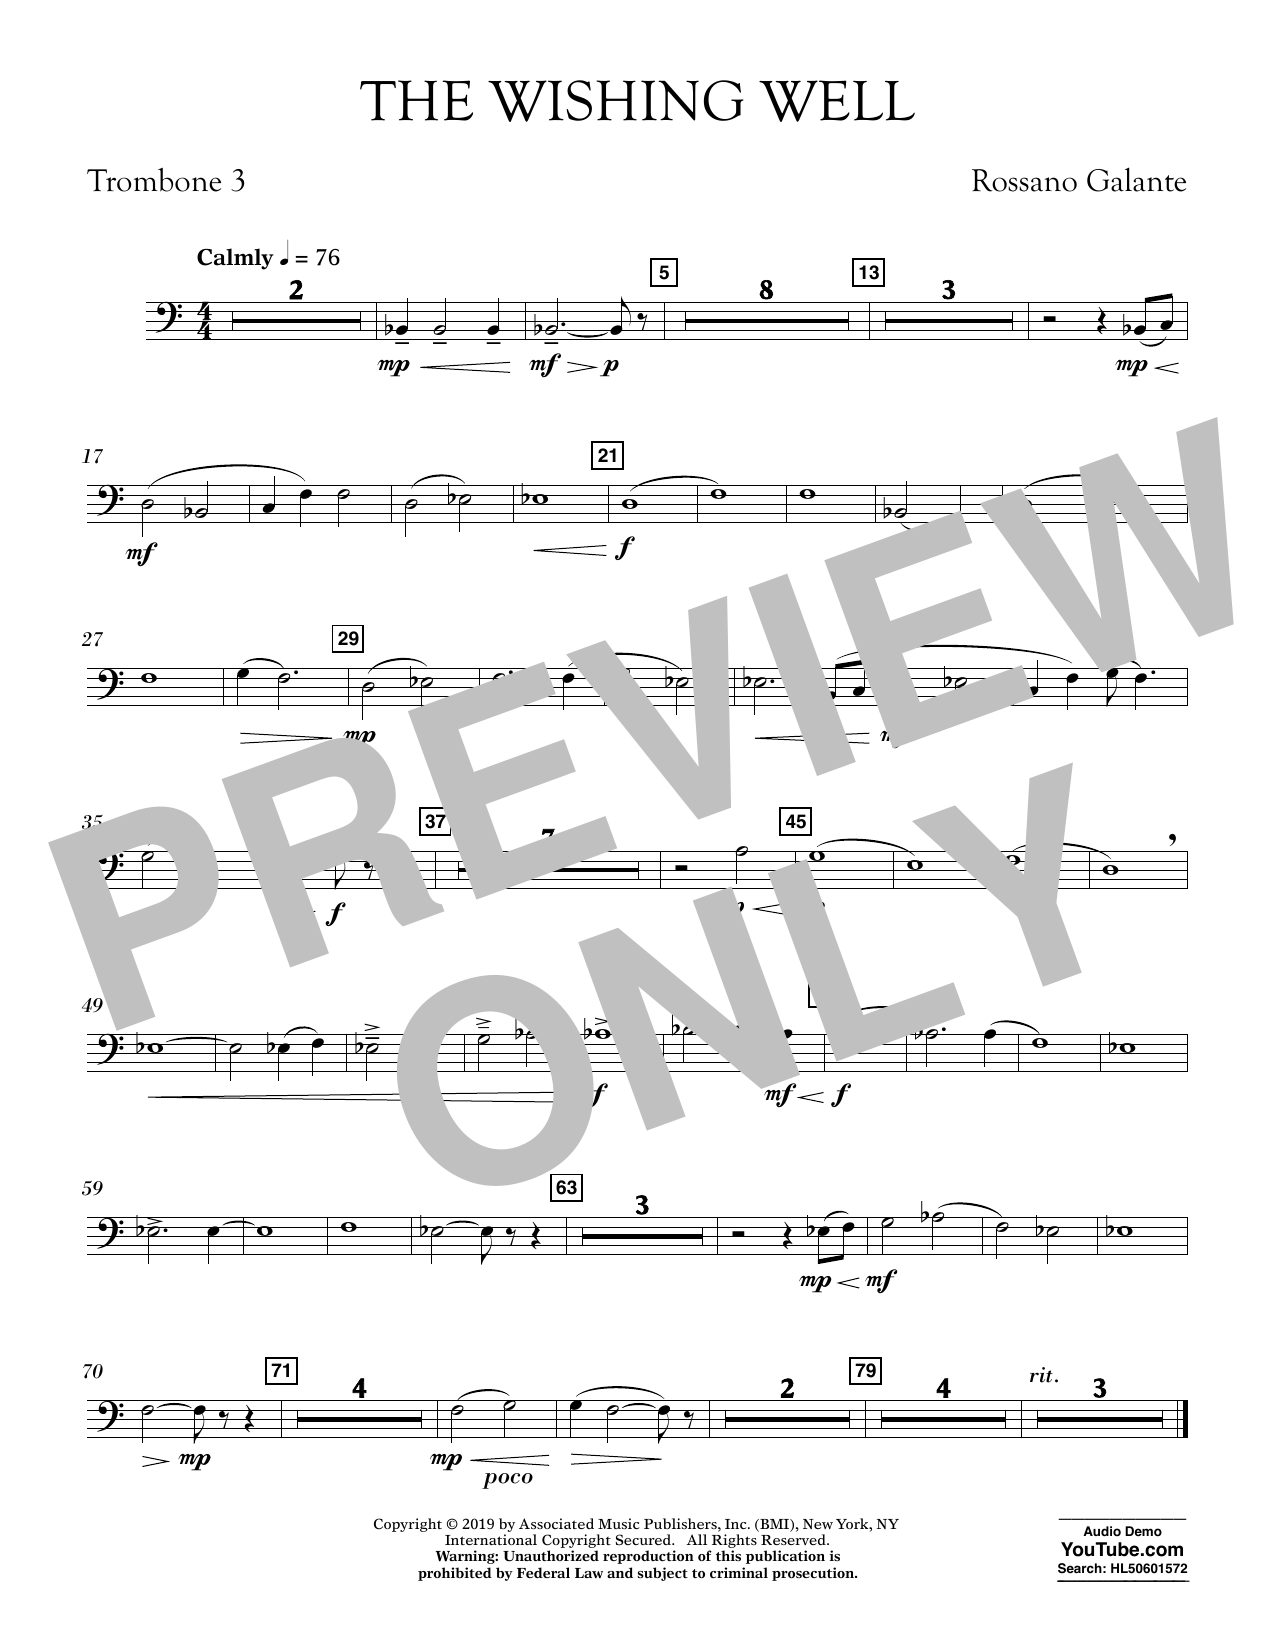 Rossano Galante The Wishing Well - Trombone 3 sheet music preview music notes and score for Concert Band including 1 page(s)